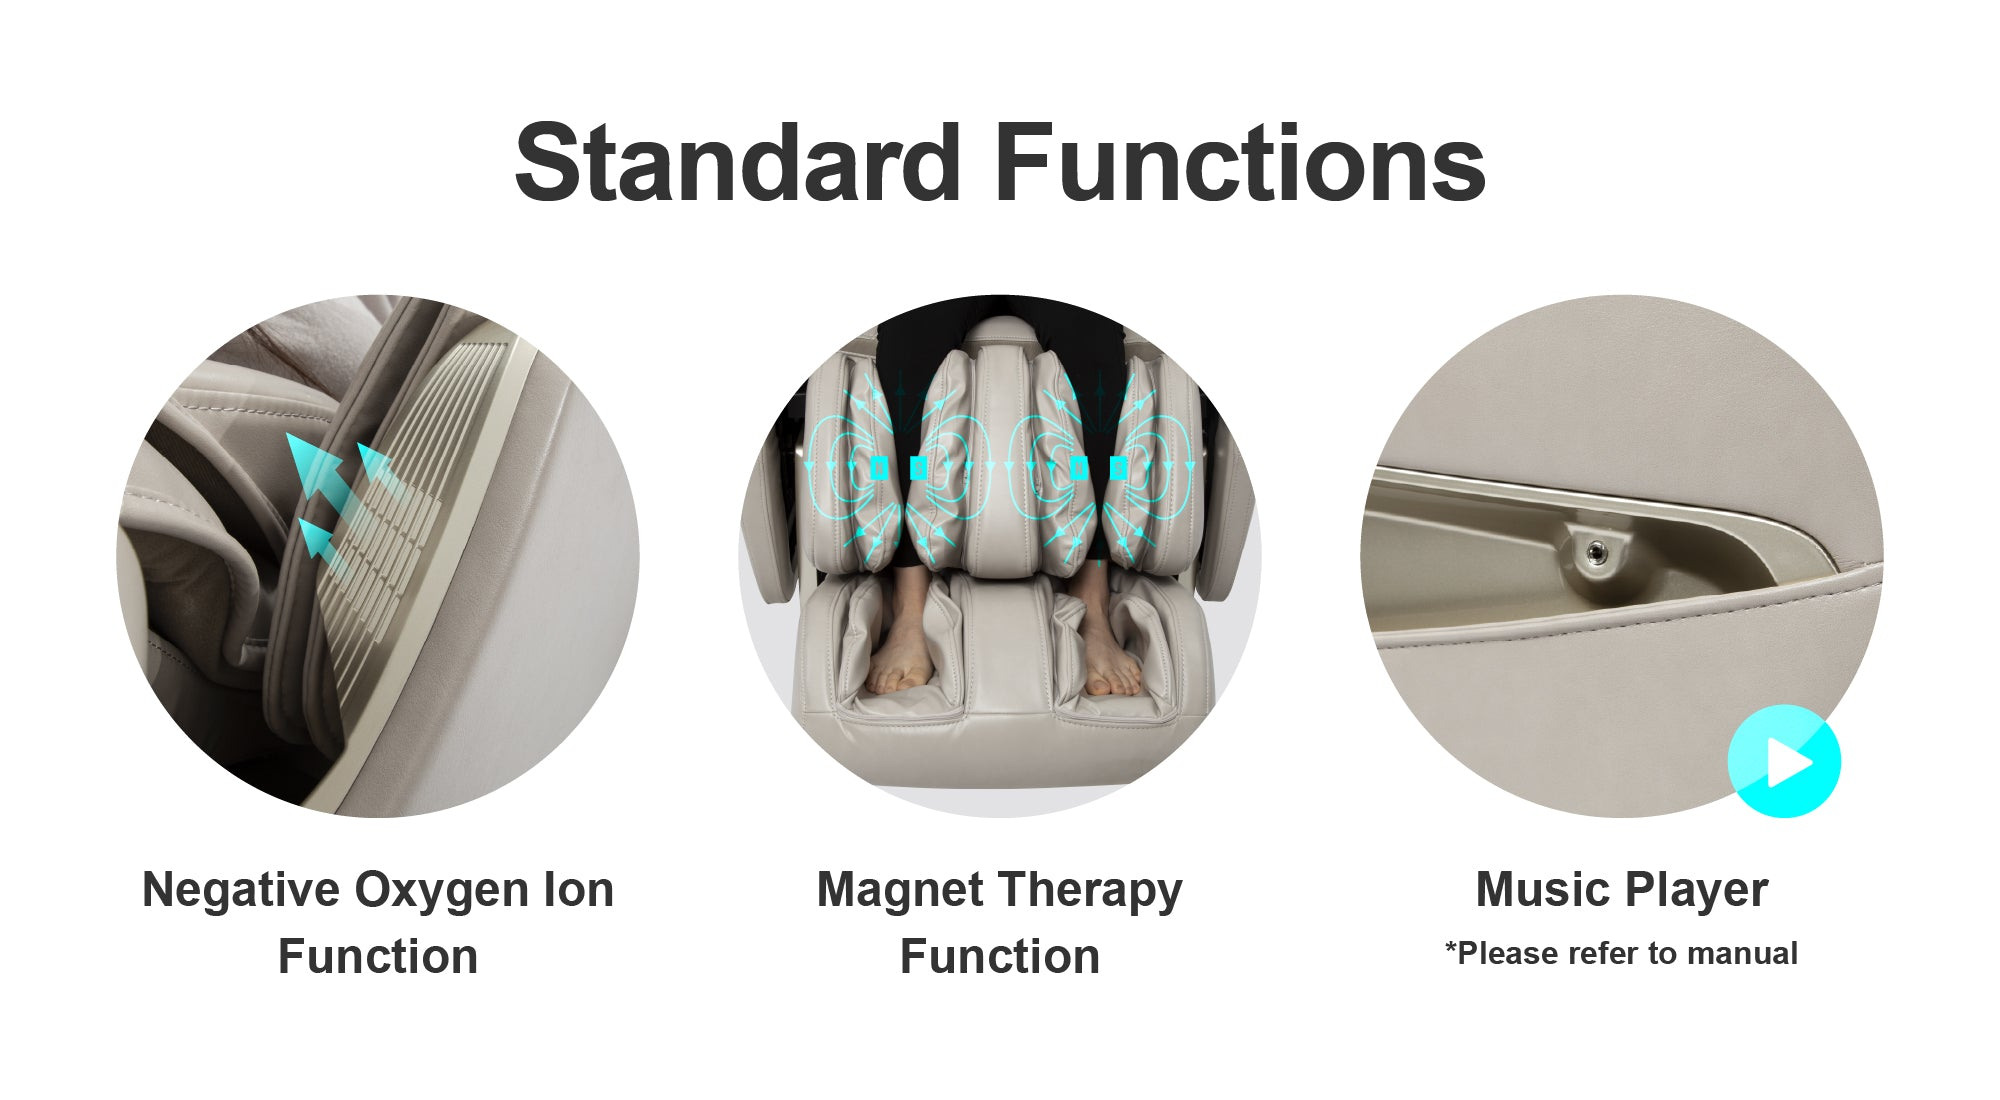 Standard Functions - Negative Oxygen Ion Function, Magnet Therapy Function, Music Player